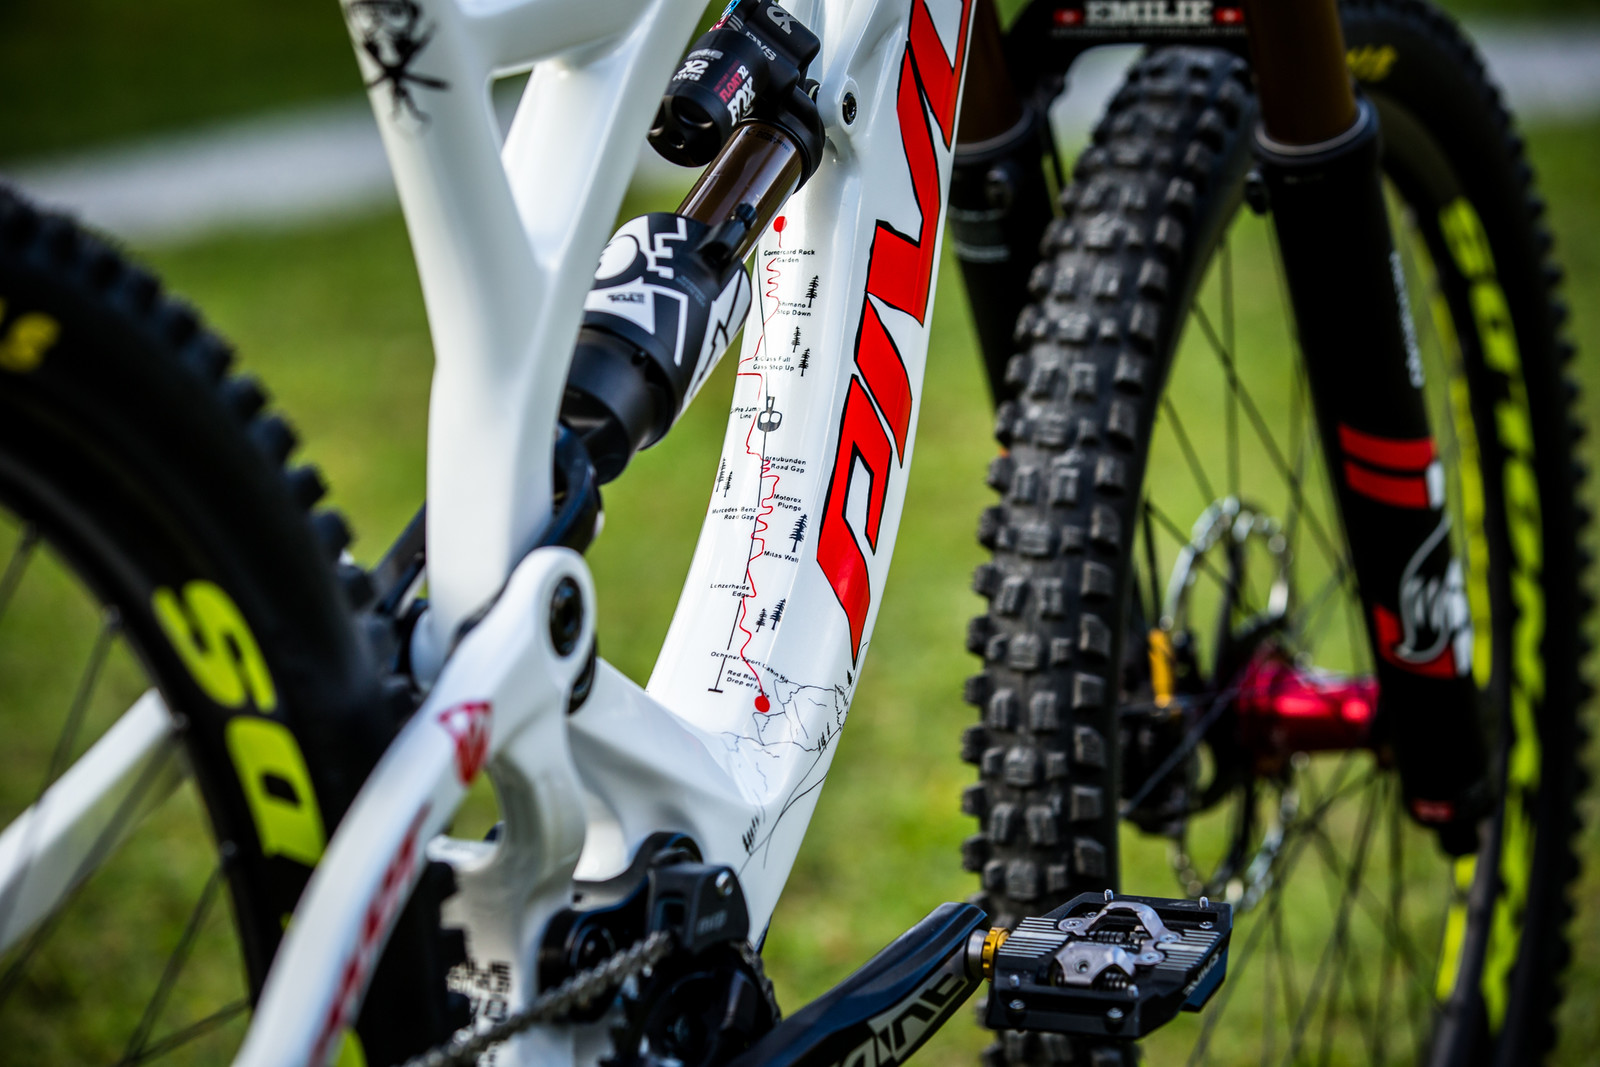 Cheat Sheet - WORLD CHAMPS BIKE - Emilie Siegenthaler's Pivot Phoenix - Mountain Biking Pictures - Vital MTB